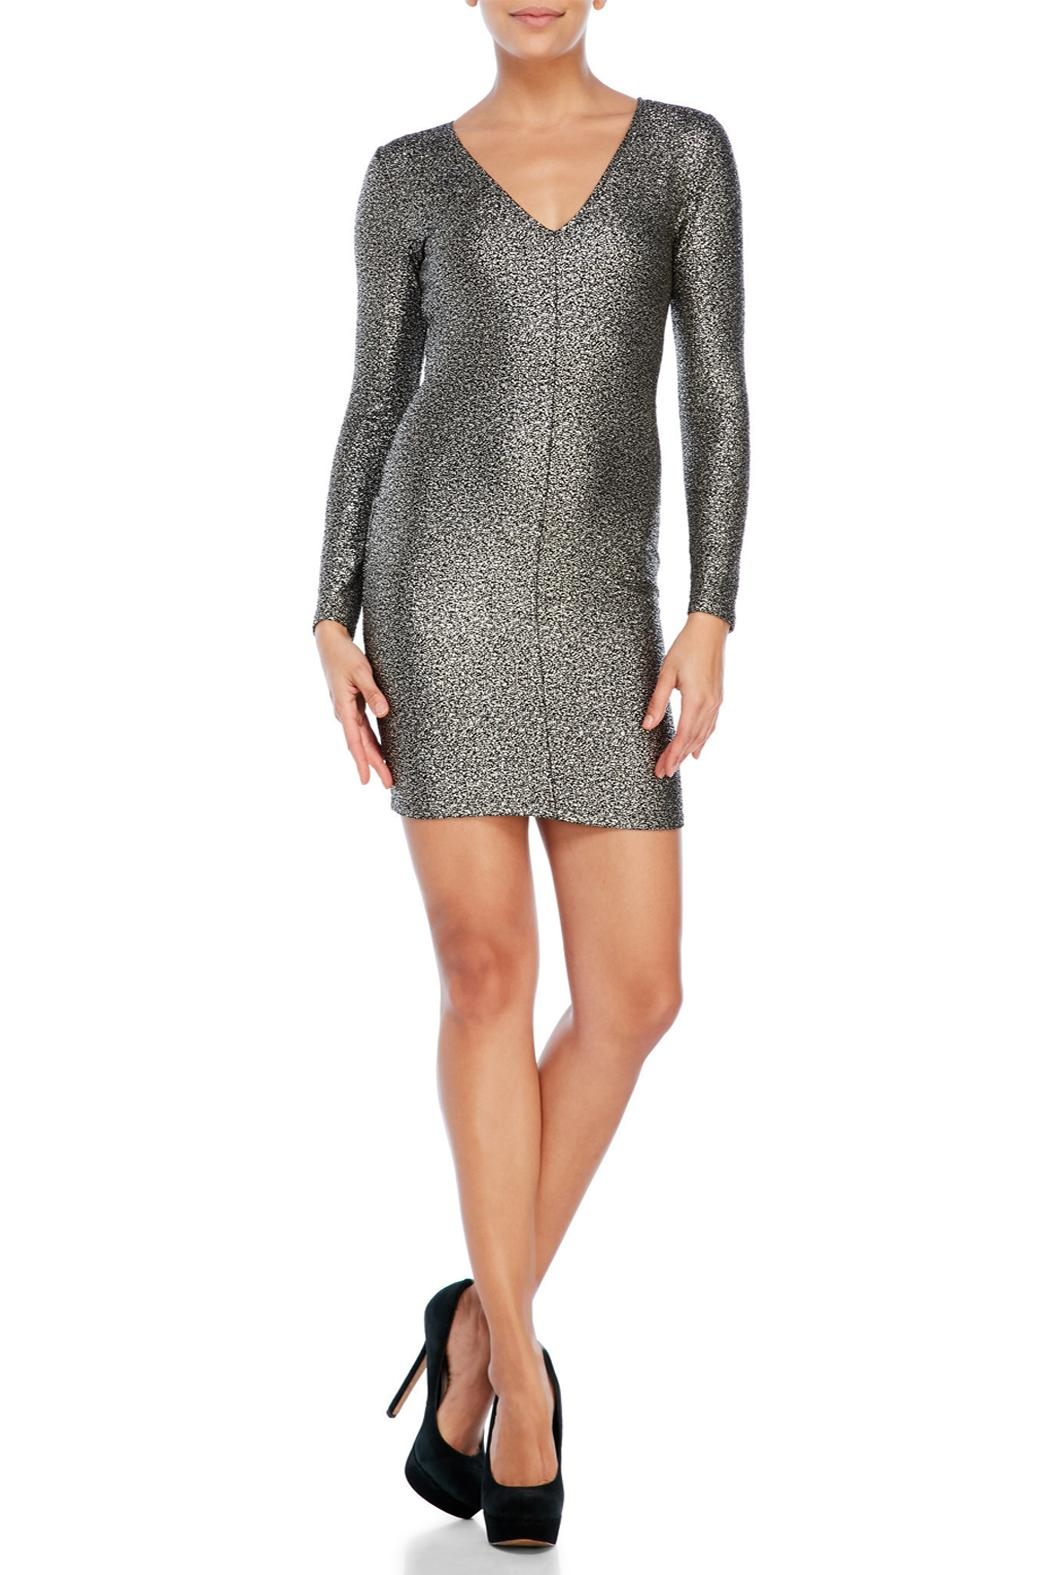 House of Atelier Metallic Bodycon Dress - Front Cropped Image